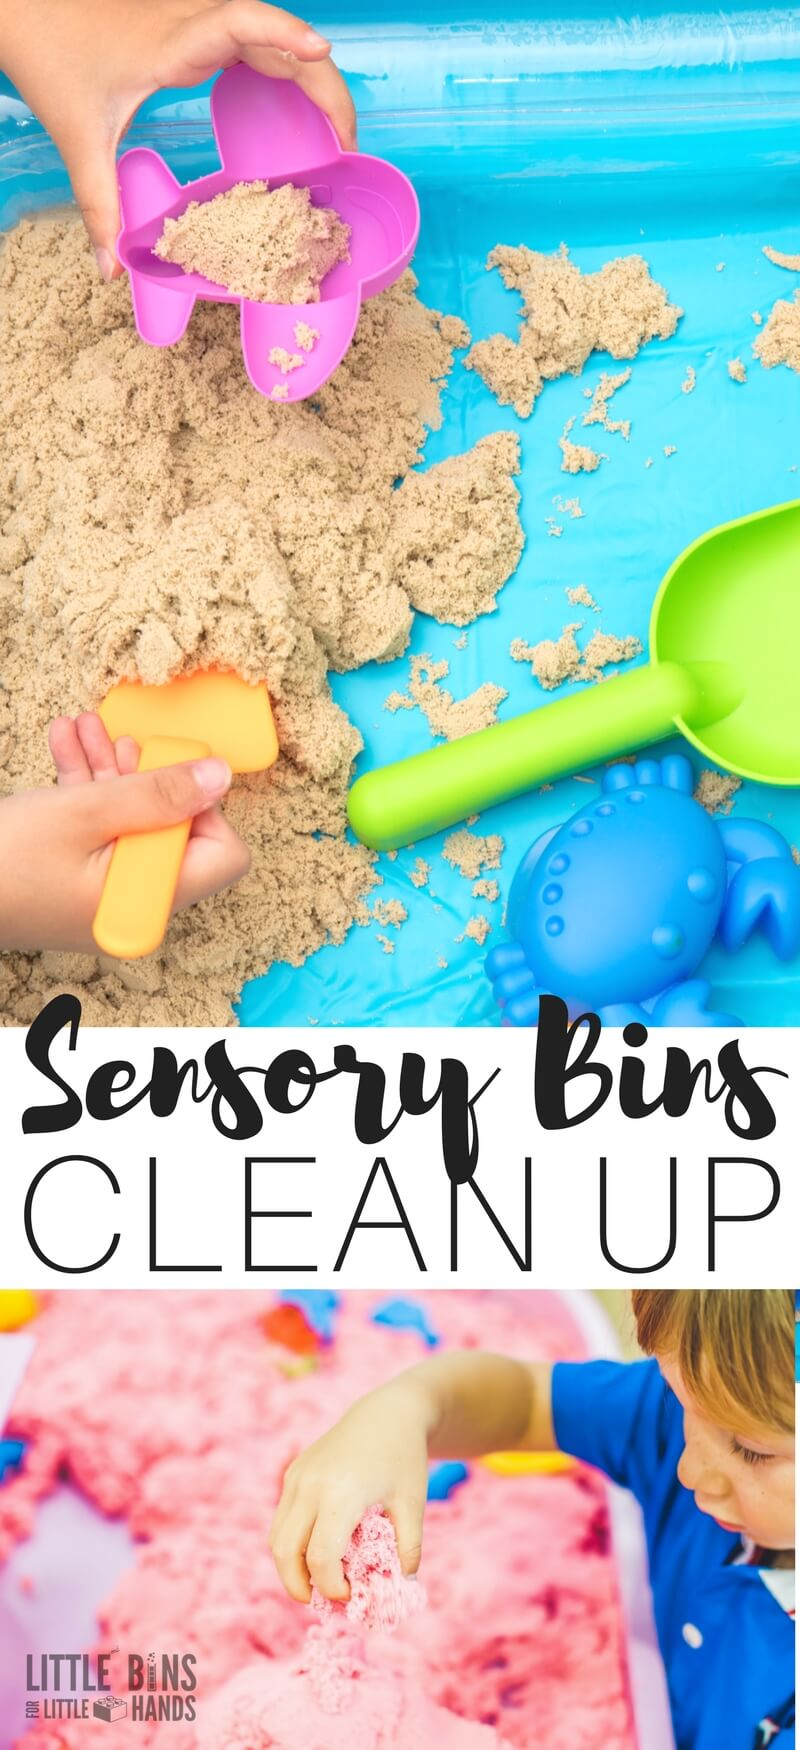 One of the biggest complaints I hear from parents, caregivers, and teachers in regards to sensory bins is the clean up! We all know the benefits of sensory bins must surely outweigh the potential mess they can make, right? Instead of choosing to forgo the sensory bin experience, learn how to clean up sensory bins in a snap instead. A couple easy tricks and tips will have you loving sensory bins in no time.